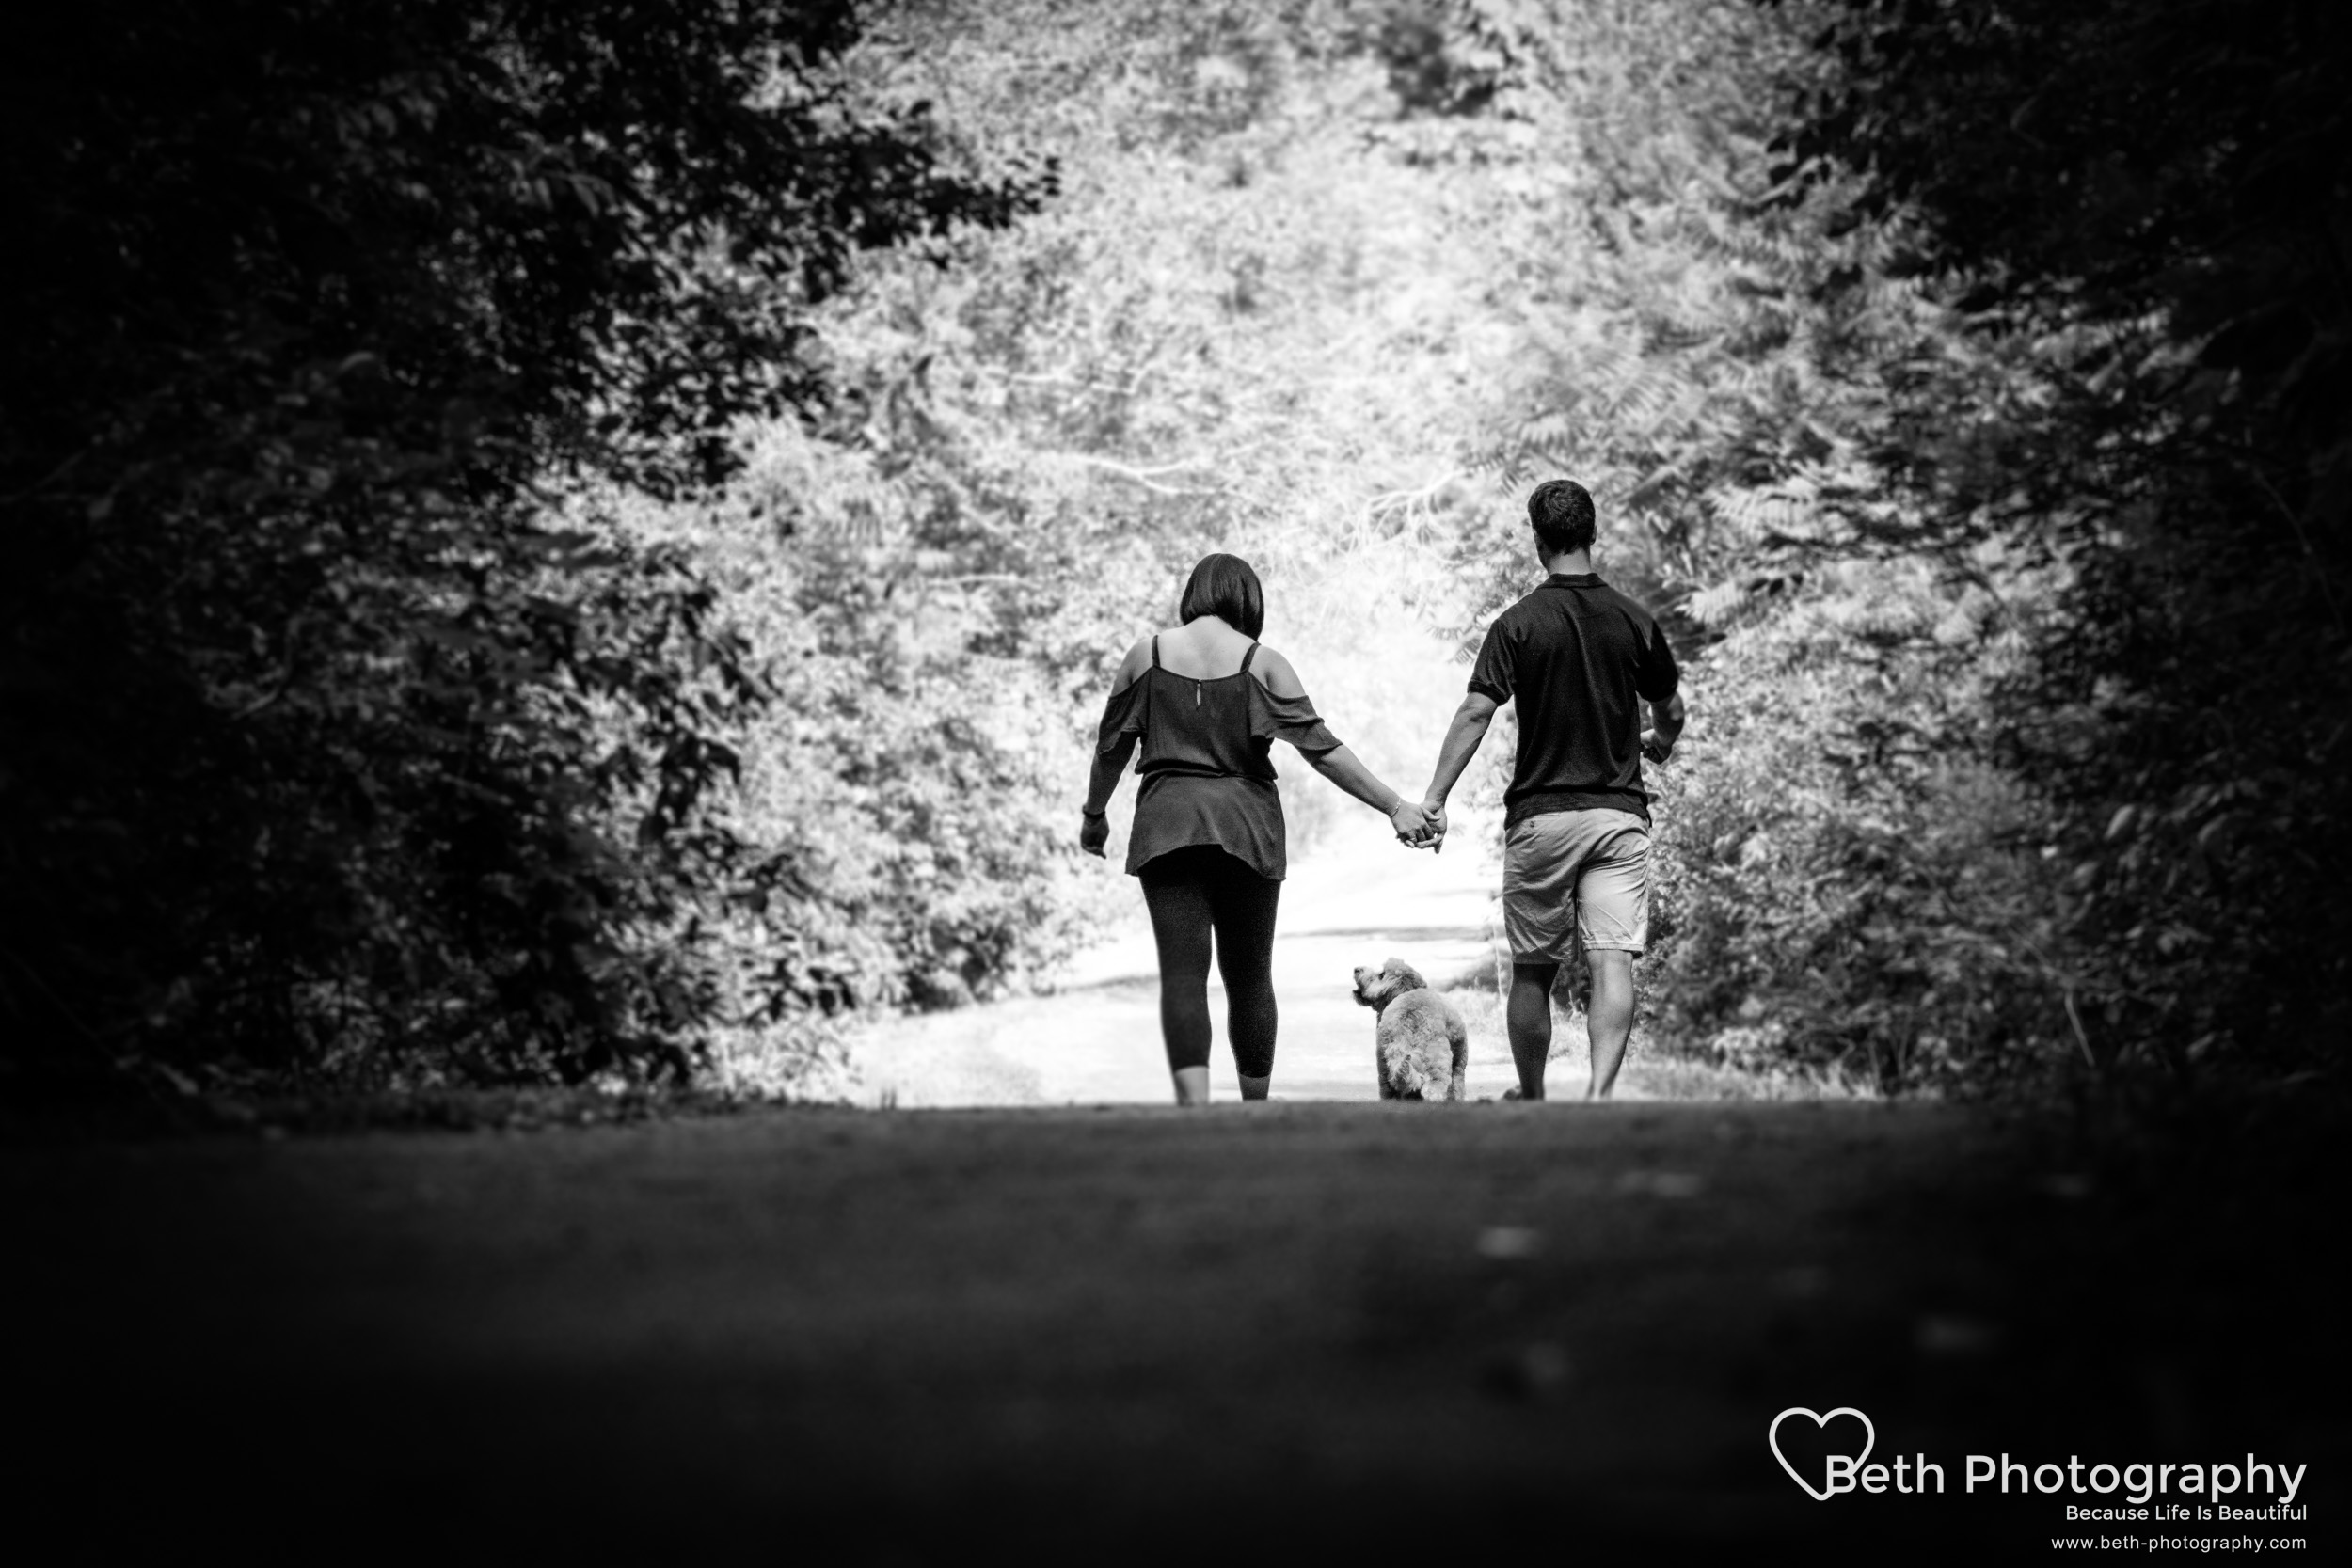 Beth Photography - Pet Photographer -Servicing Ottawa to Cornwall-16.jpg